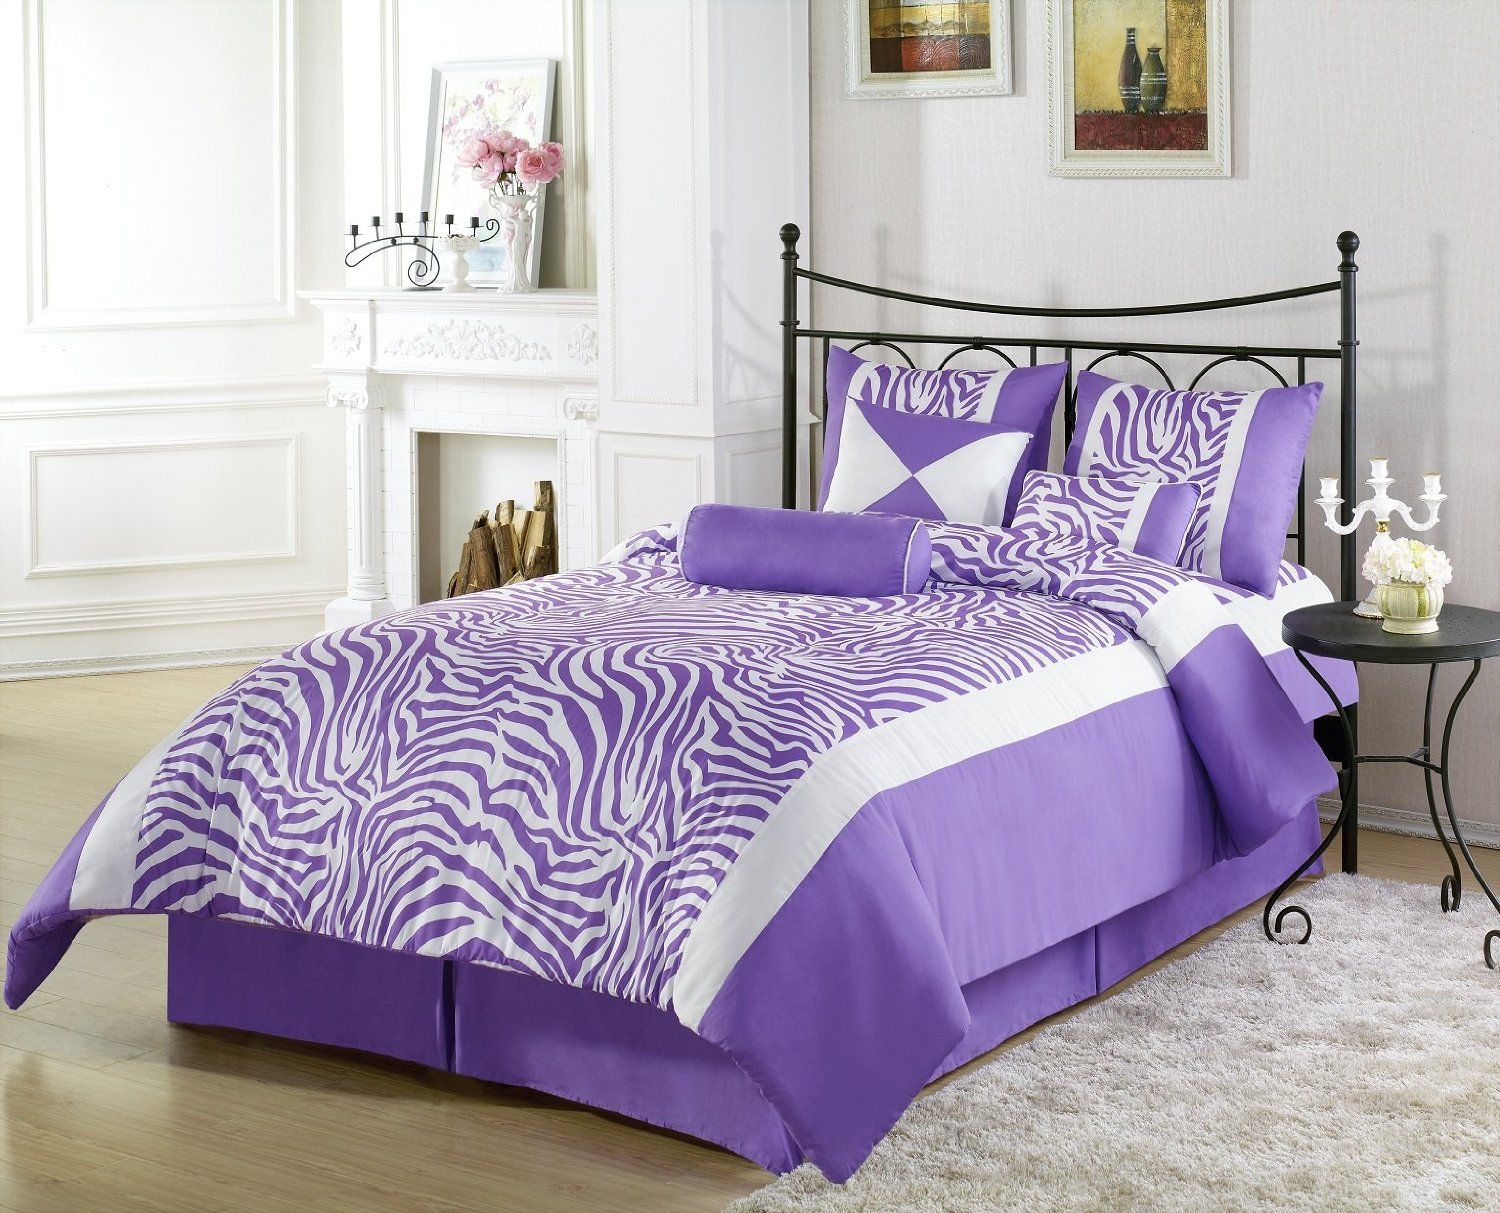 How To Incorporate Zebra Print Into Your Bedroomu0027s Décor